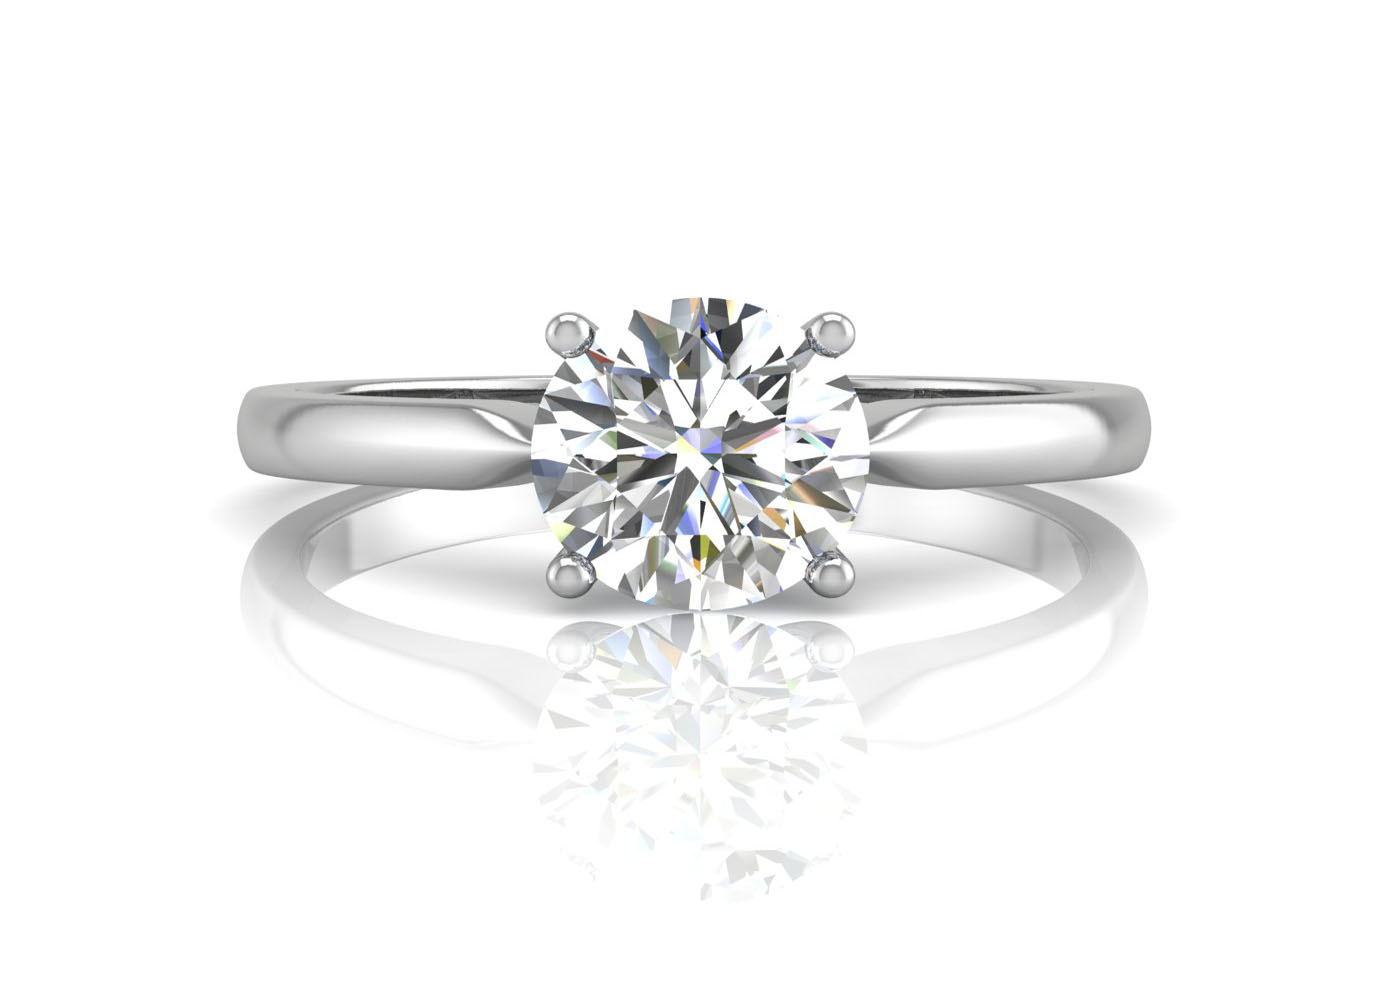 View Our Diamond Solitaire Engagement Ring Collection